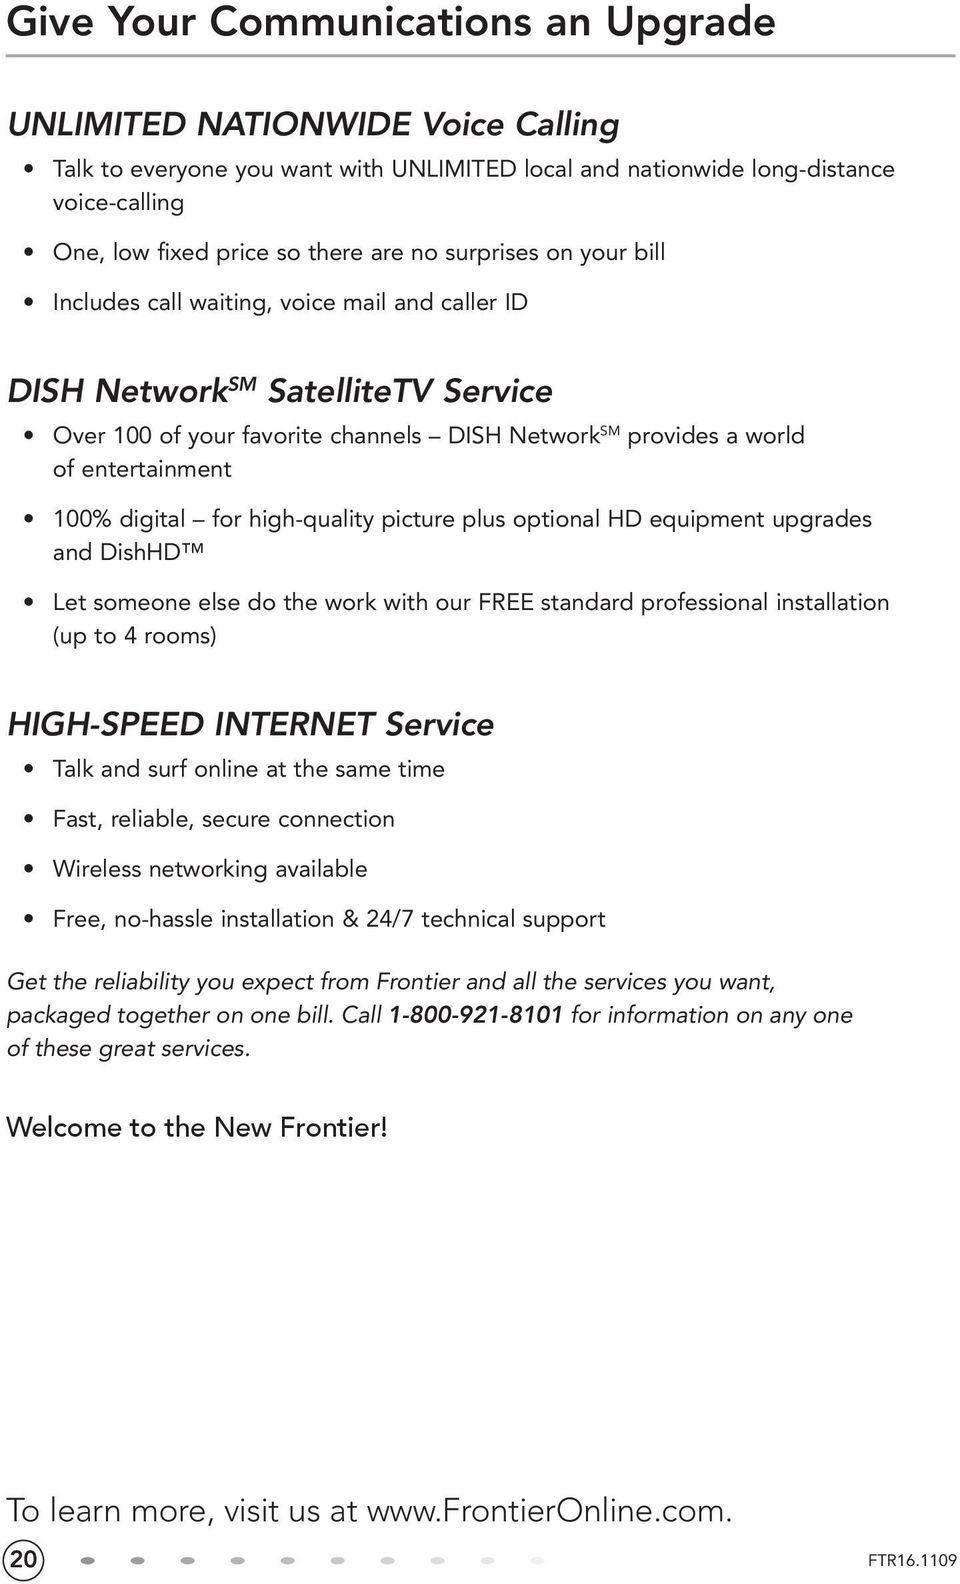 digital for high-quality picture plus optional HD equipment upgrades and DishHD Let someone else do the work with our FREE standard professional installation (up to 4 rooms) HIGH-SPEED INTERNET